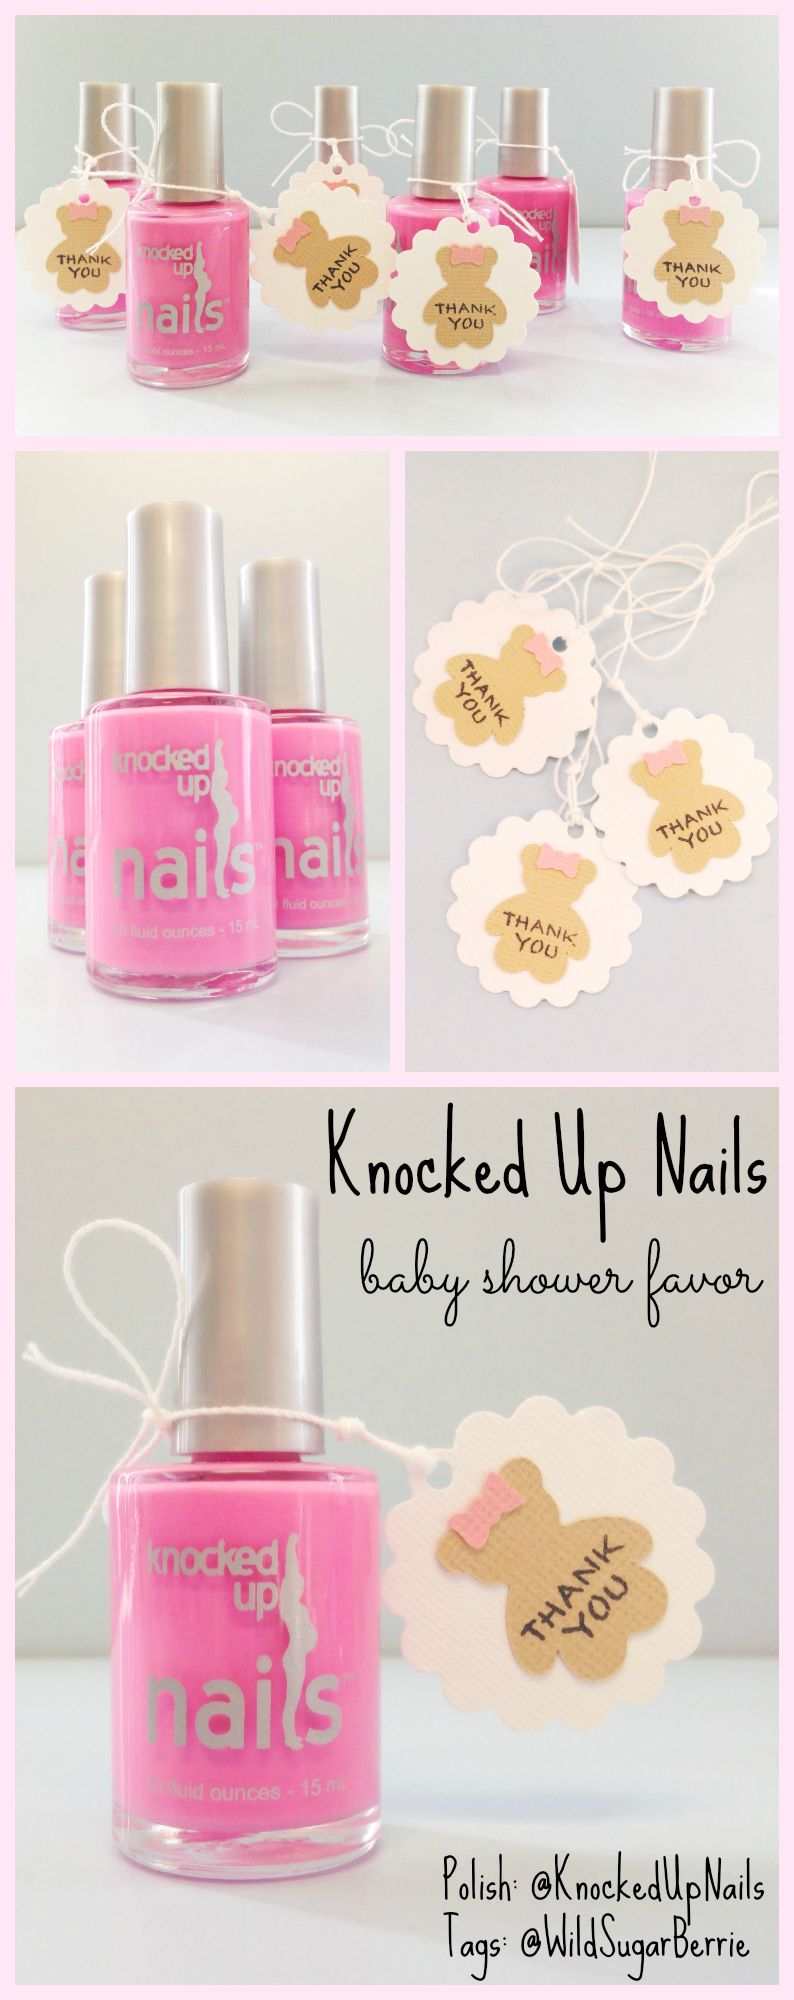 Unique Baby Shower Favors: Knocked Up Nails pregnancy-safe nail ...